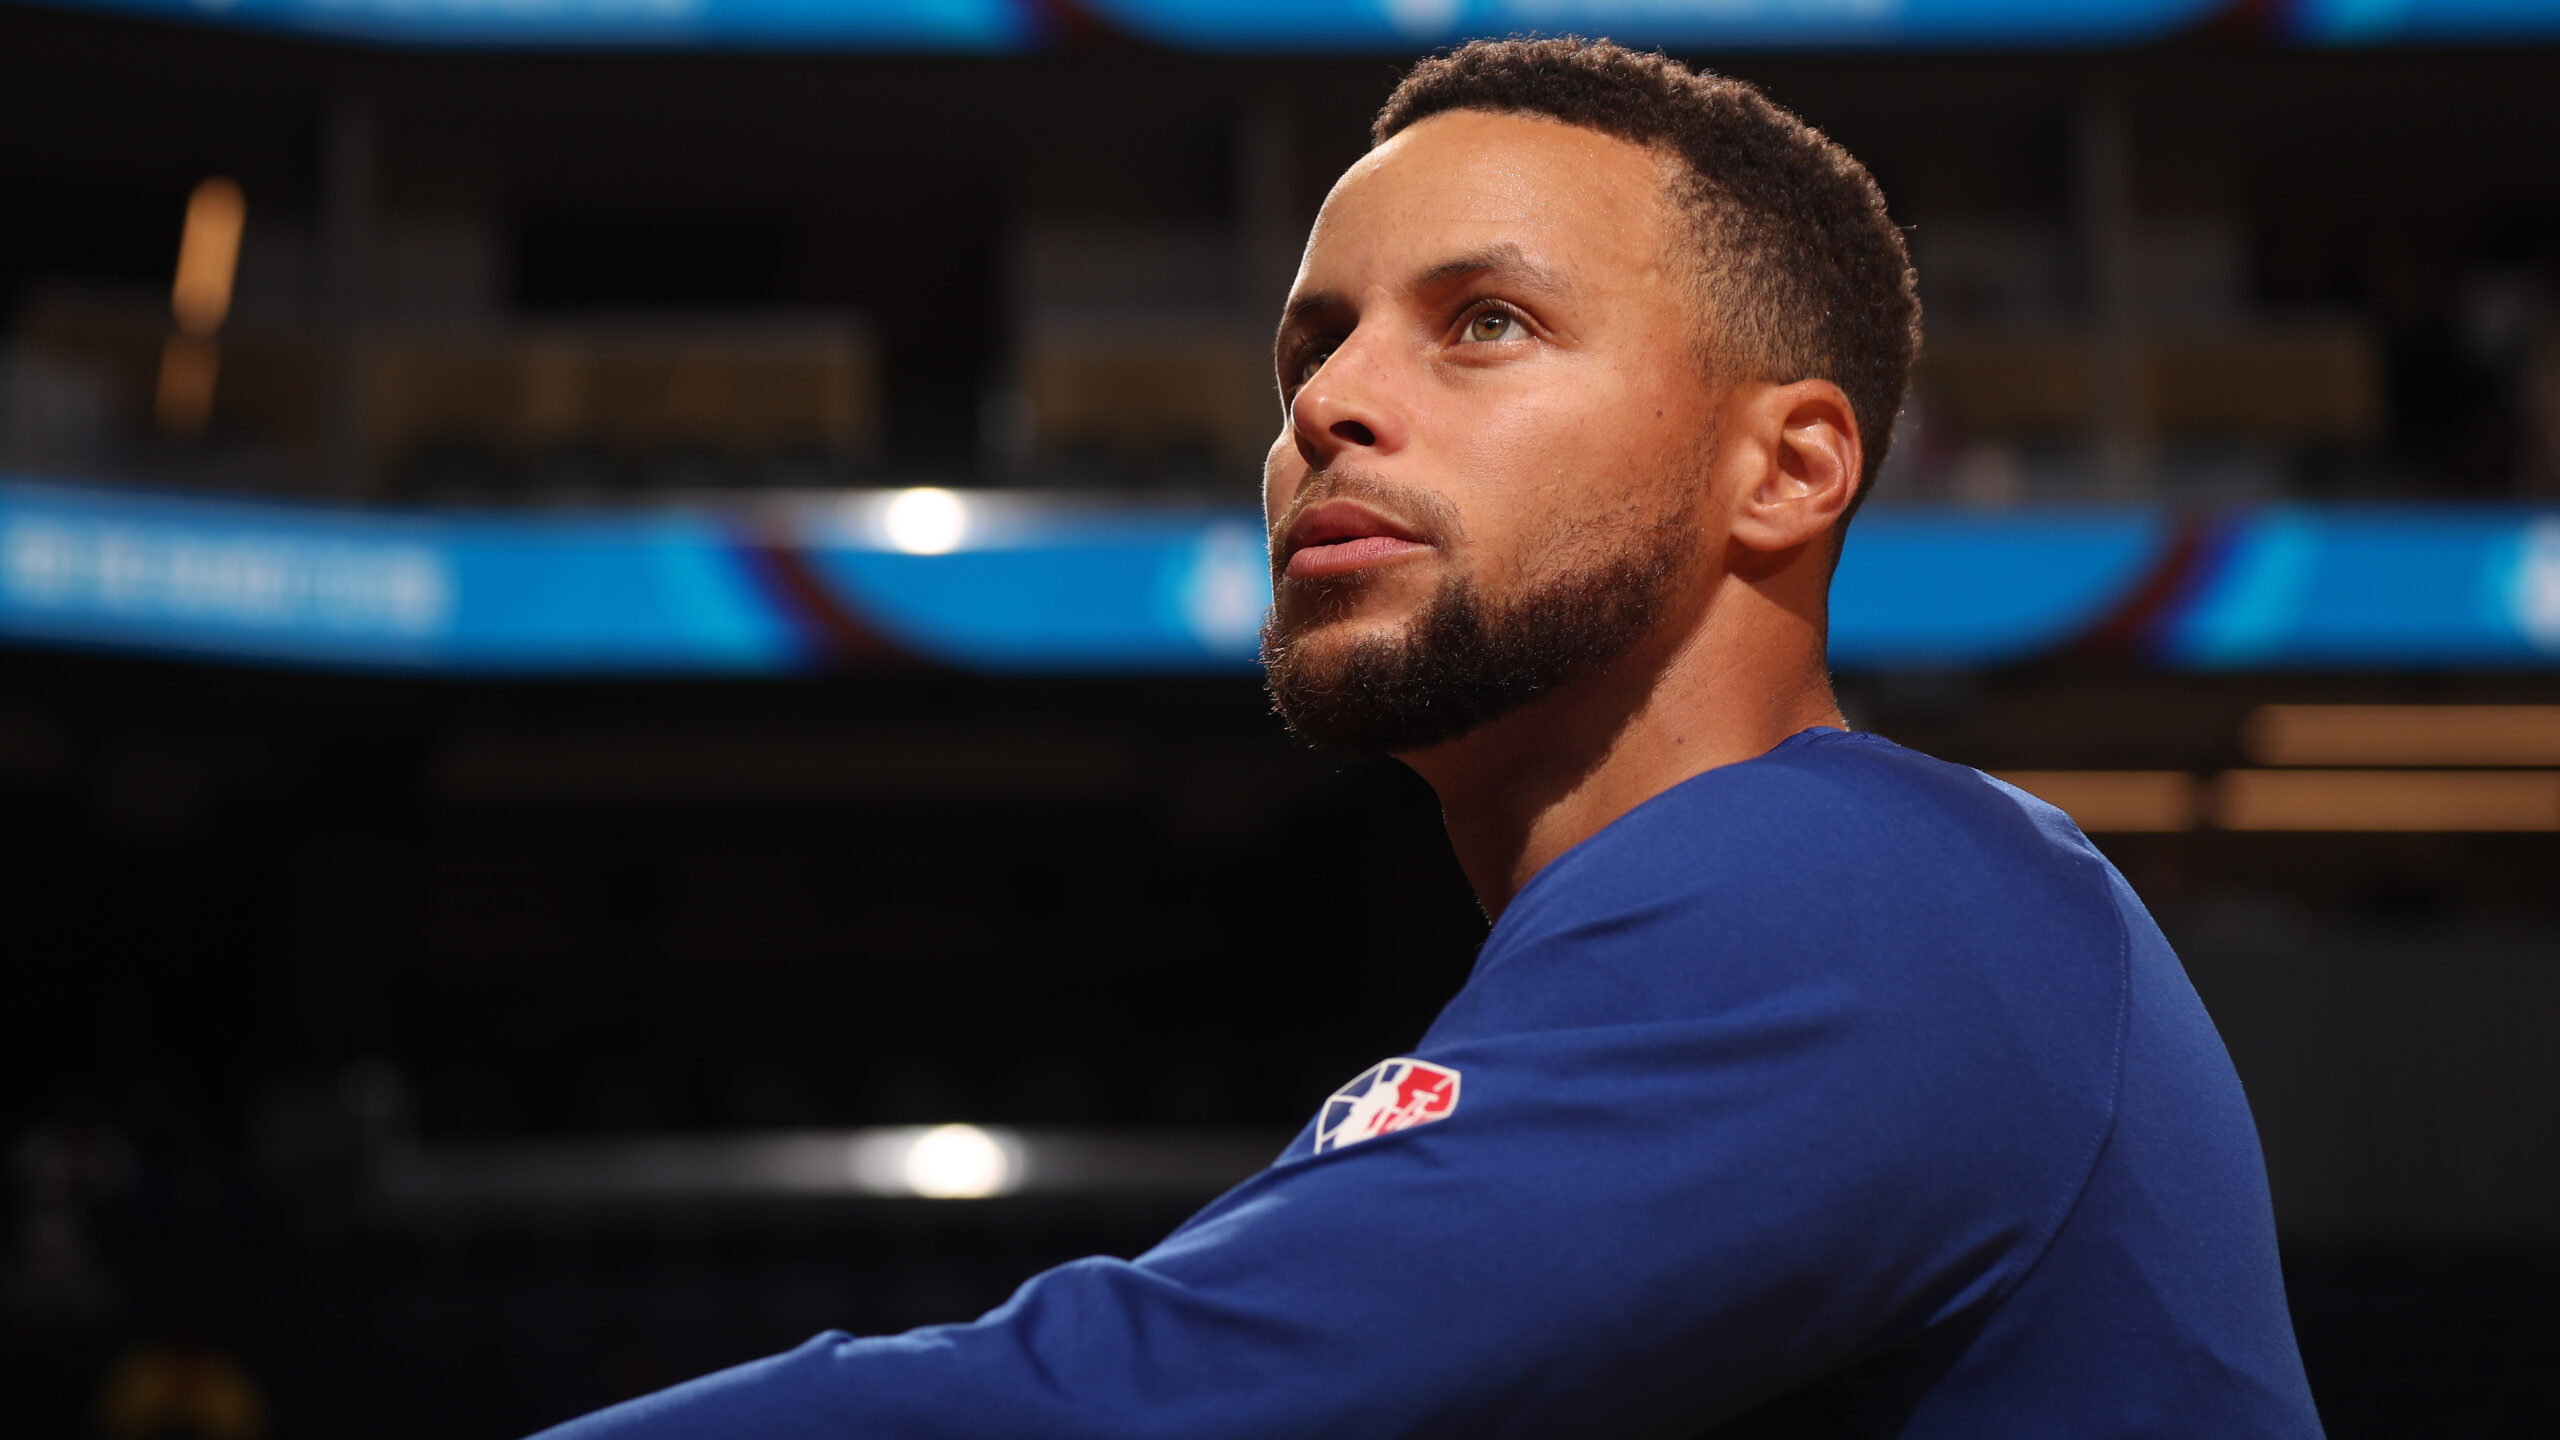 Curry poised to make 3-point history this season